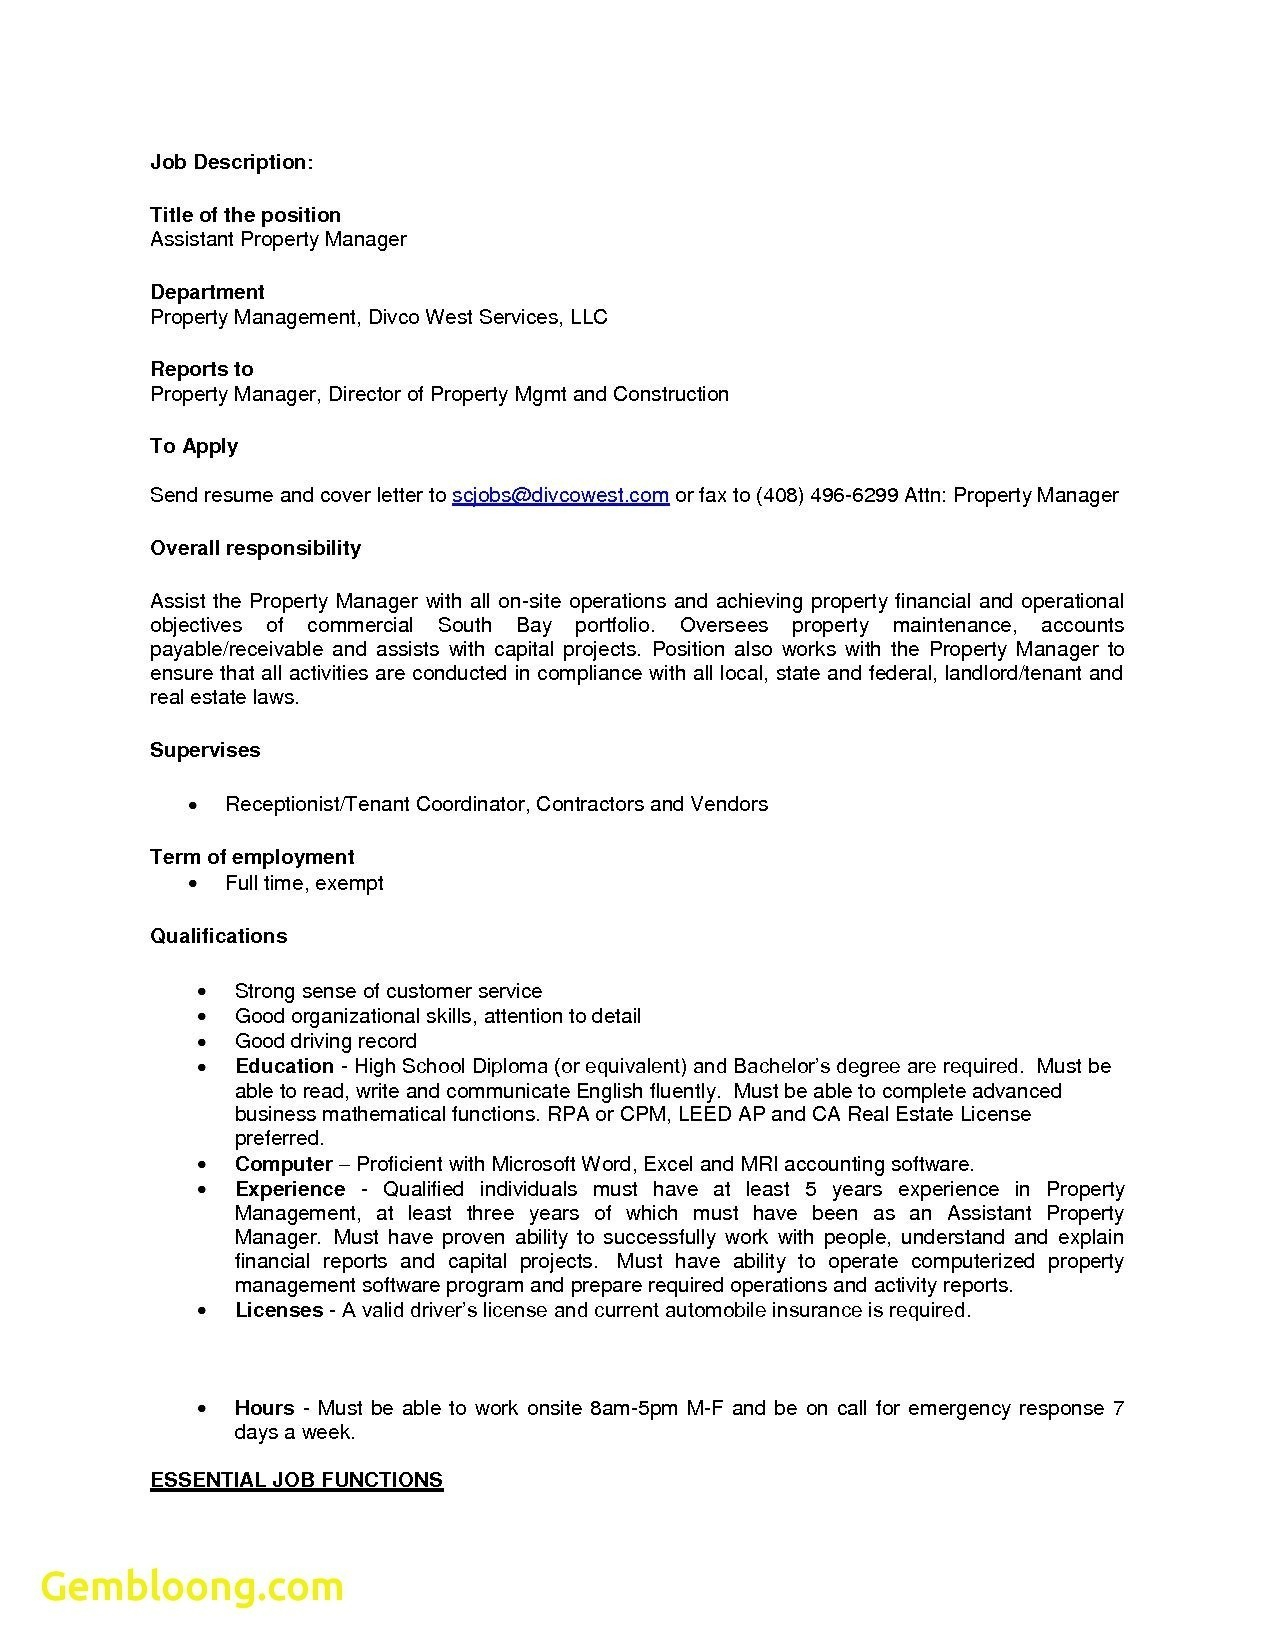 Work Offer Letter Template - format Appointment Letter In Marathi Best Appointment Letter